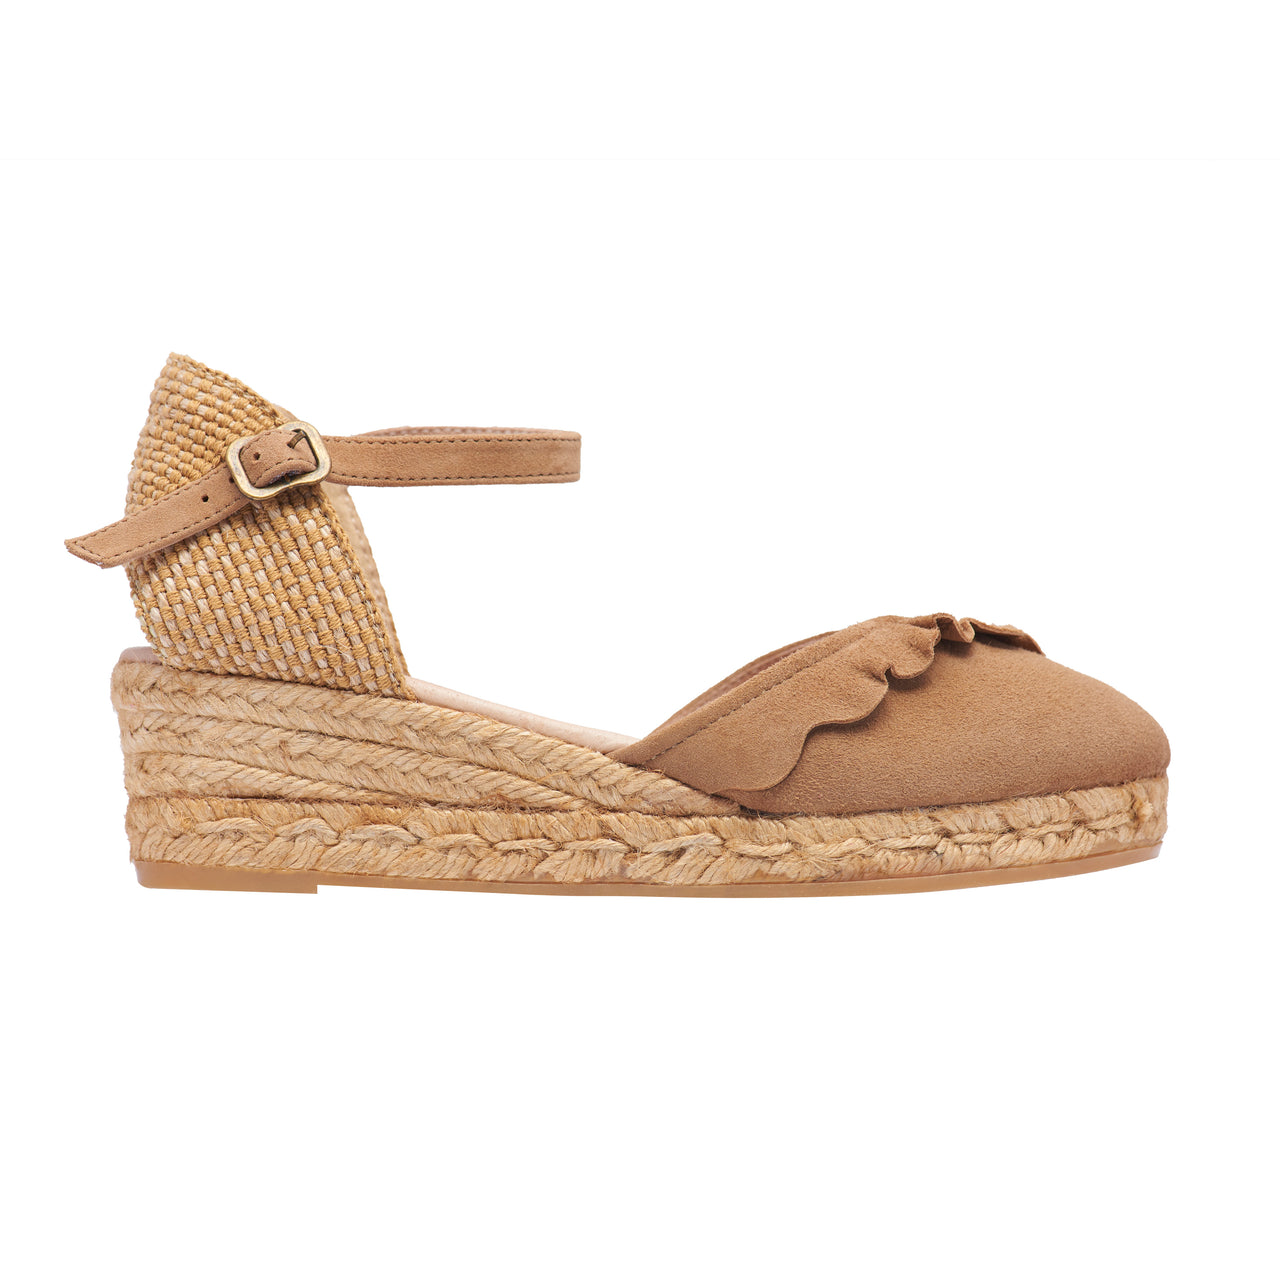 CLEA Nude espadrilles - Badt and Co - singapore